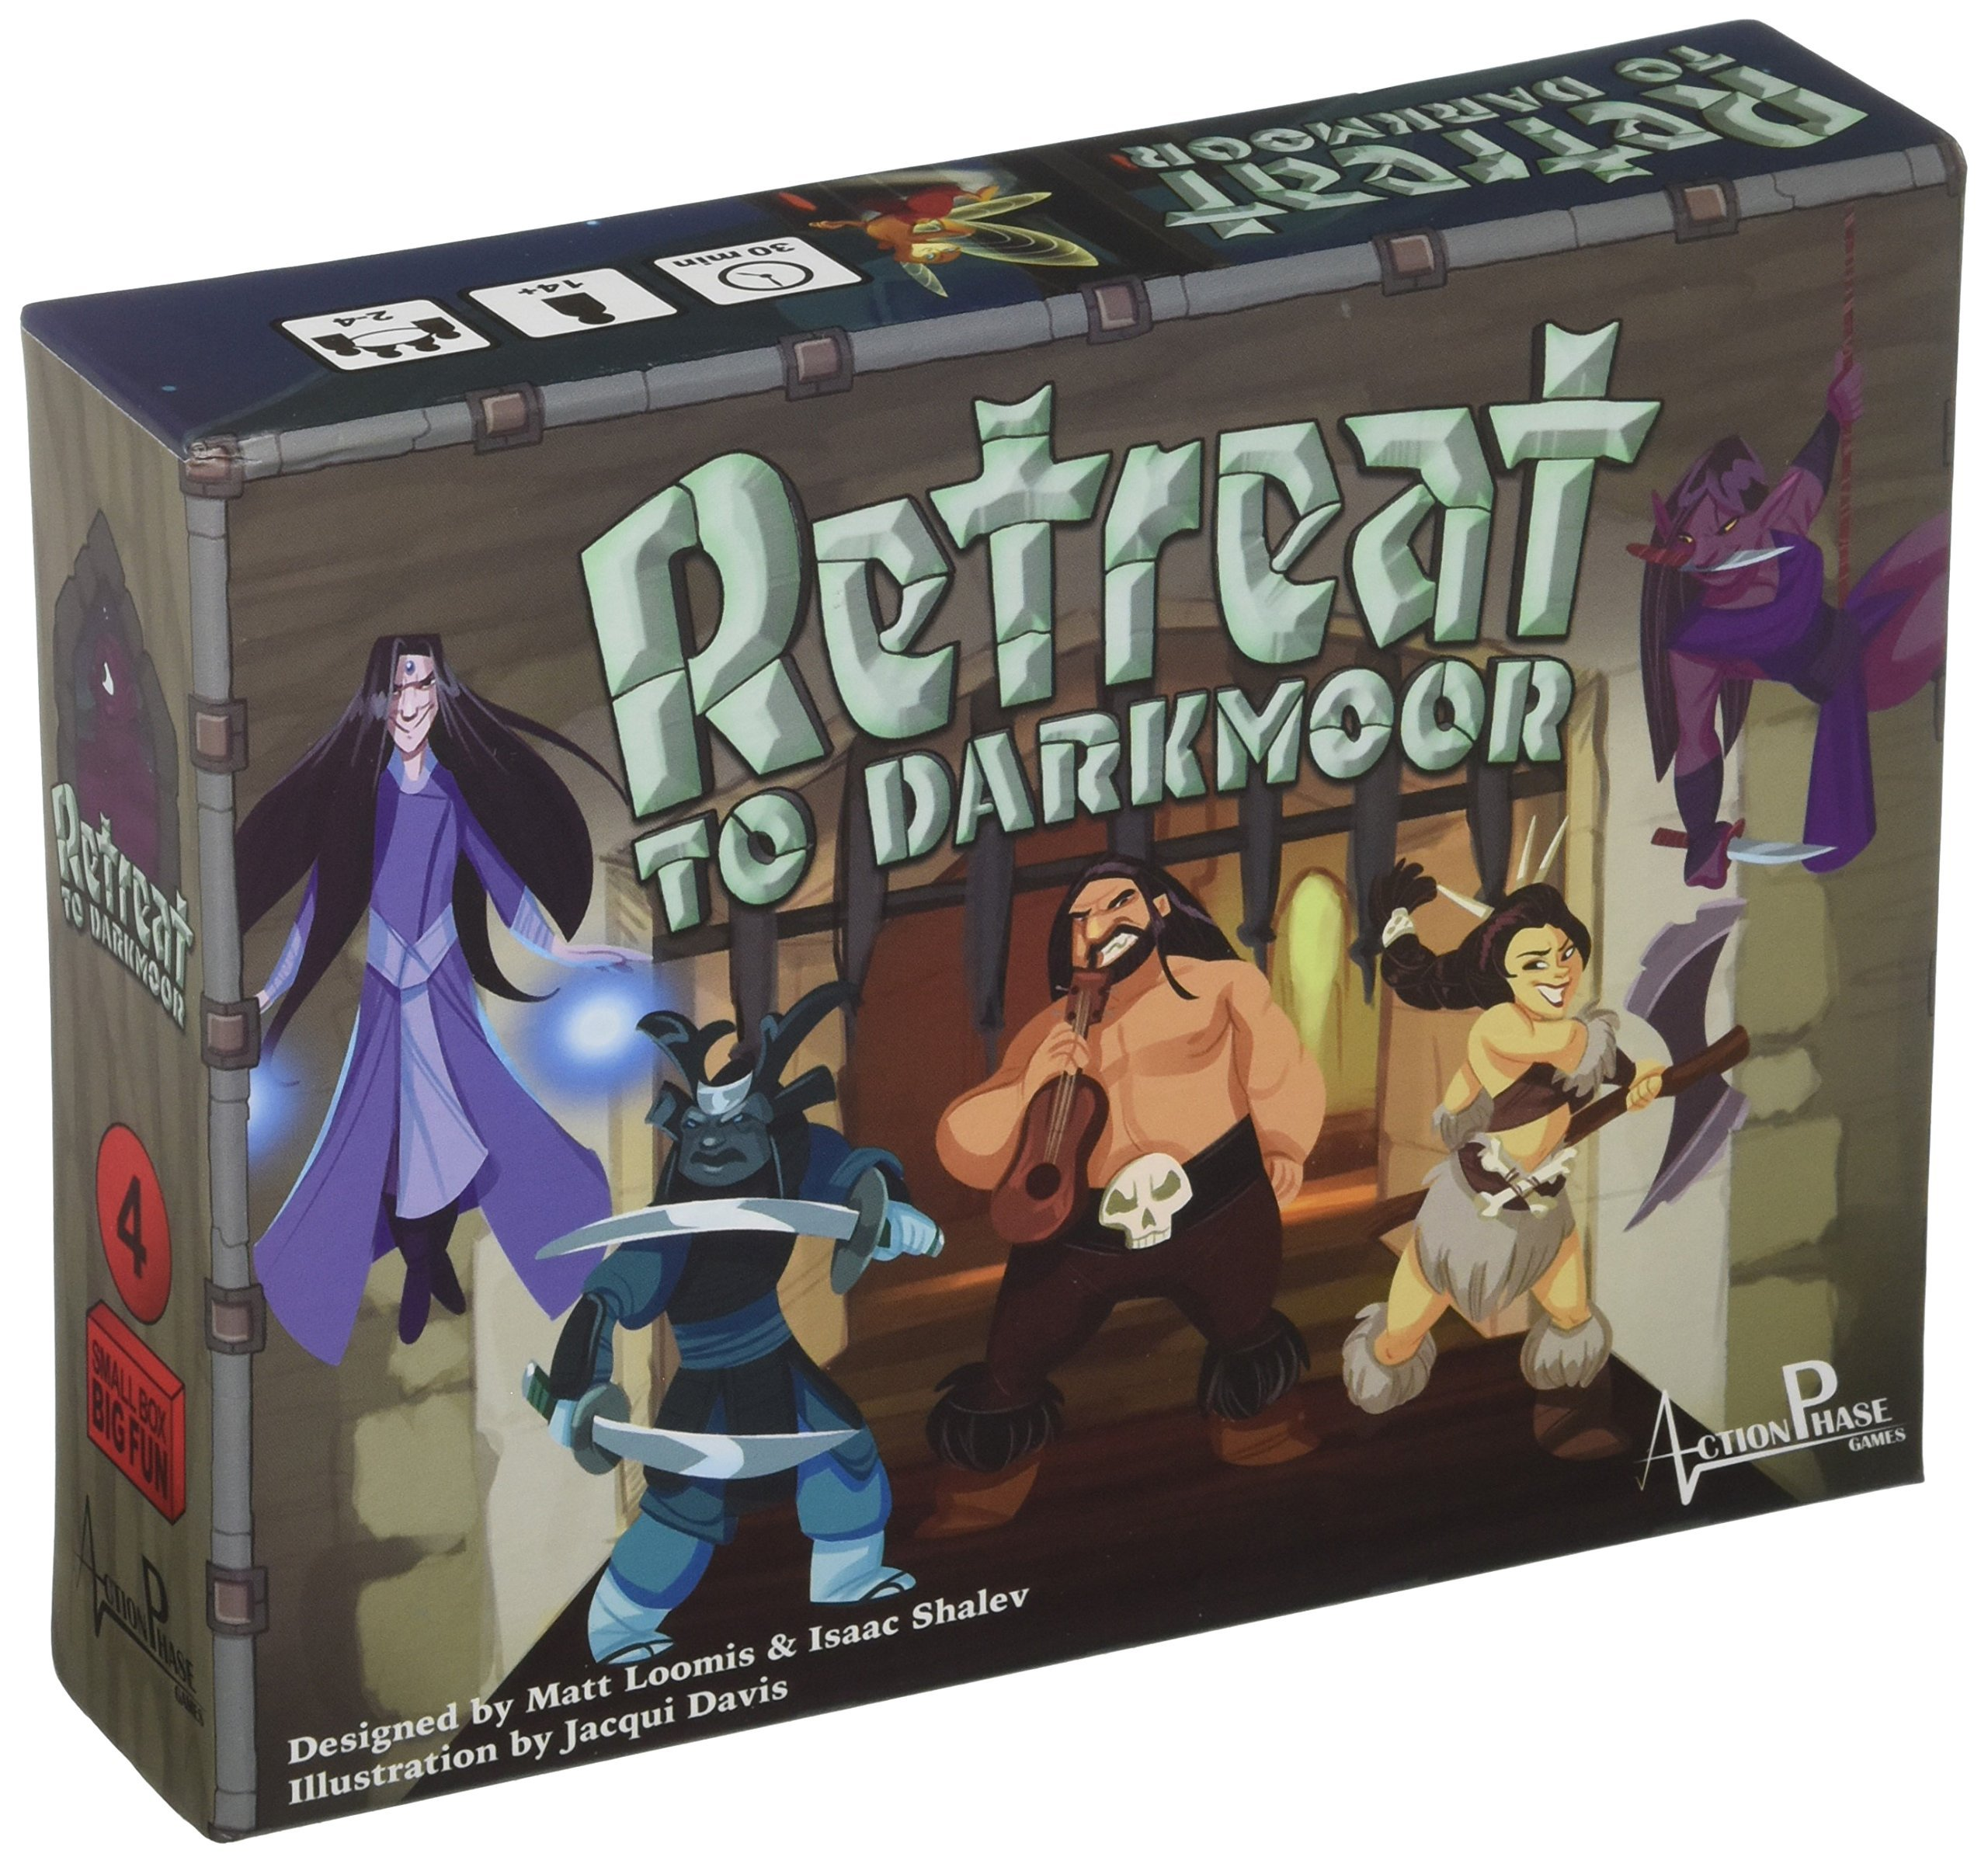 Action Phase Games Retreat to Darkmoor Board Game